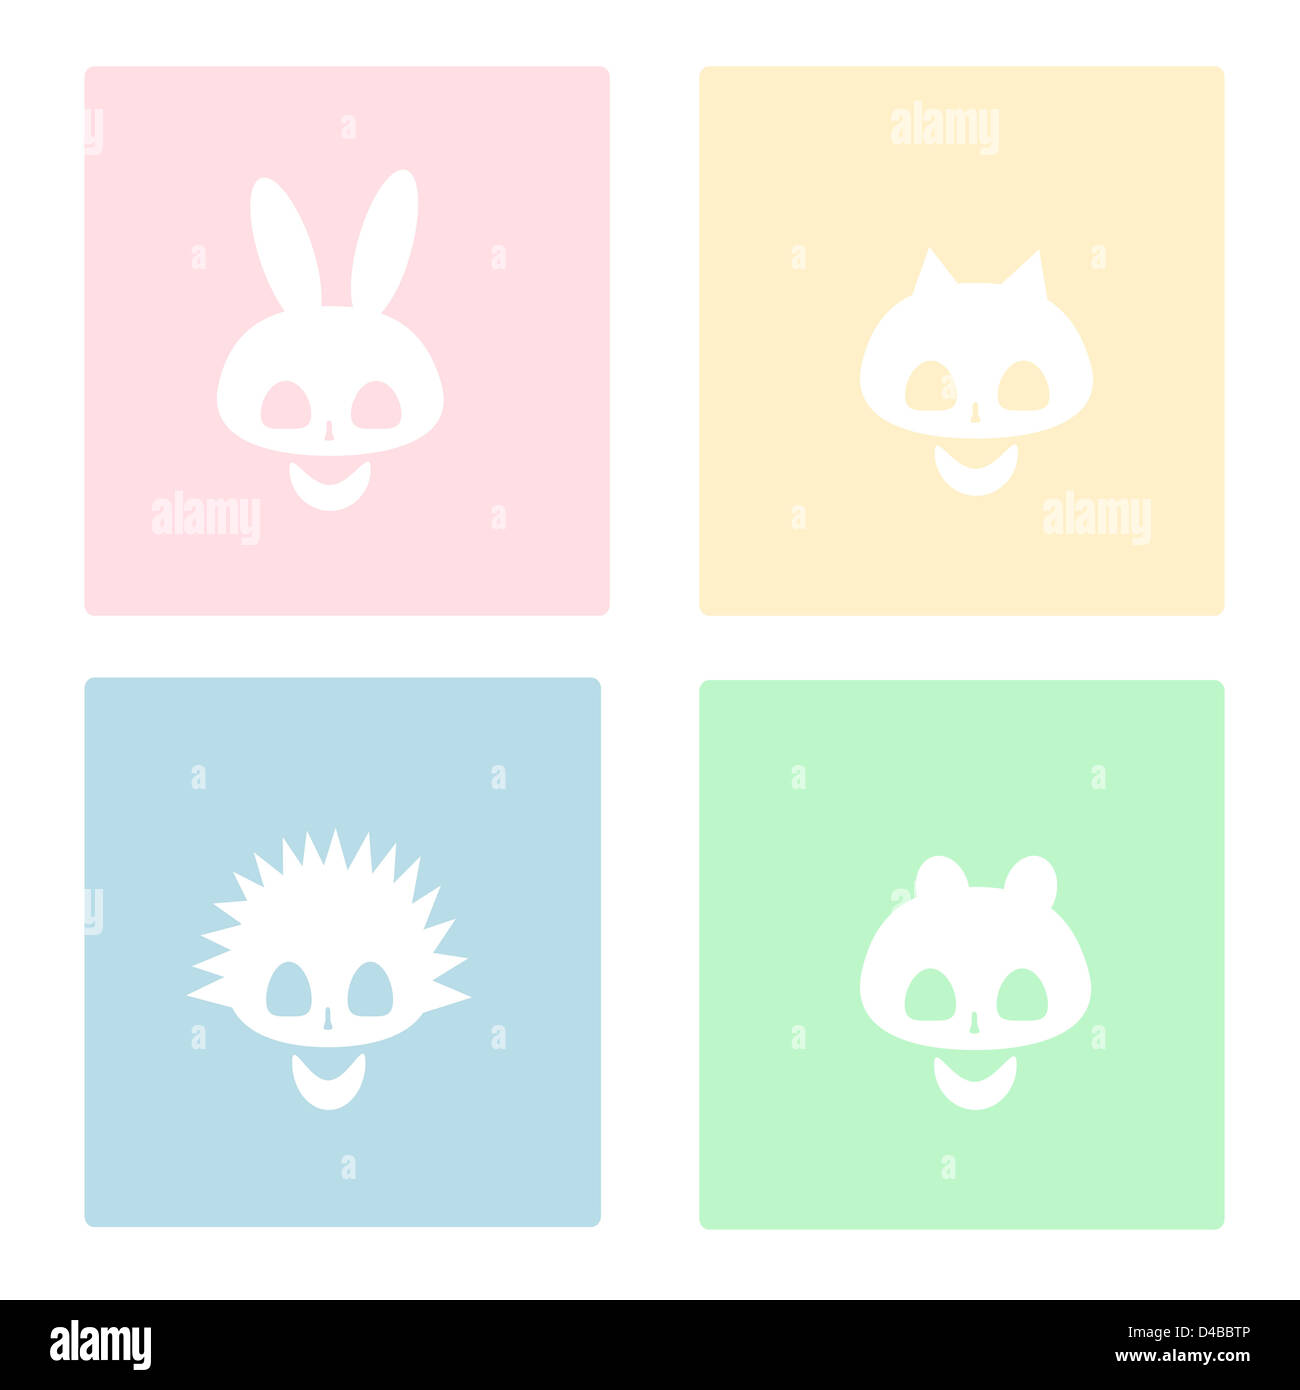 skulls of various animals on a colored background - Stock Image